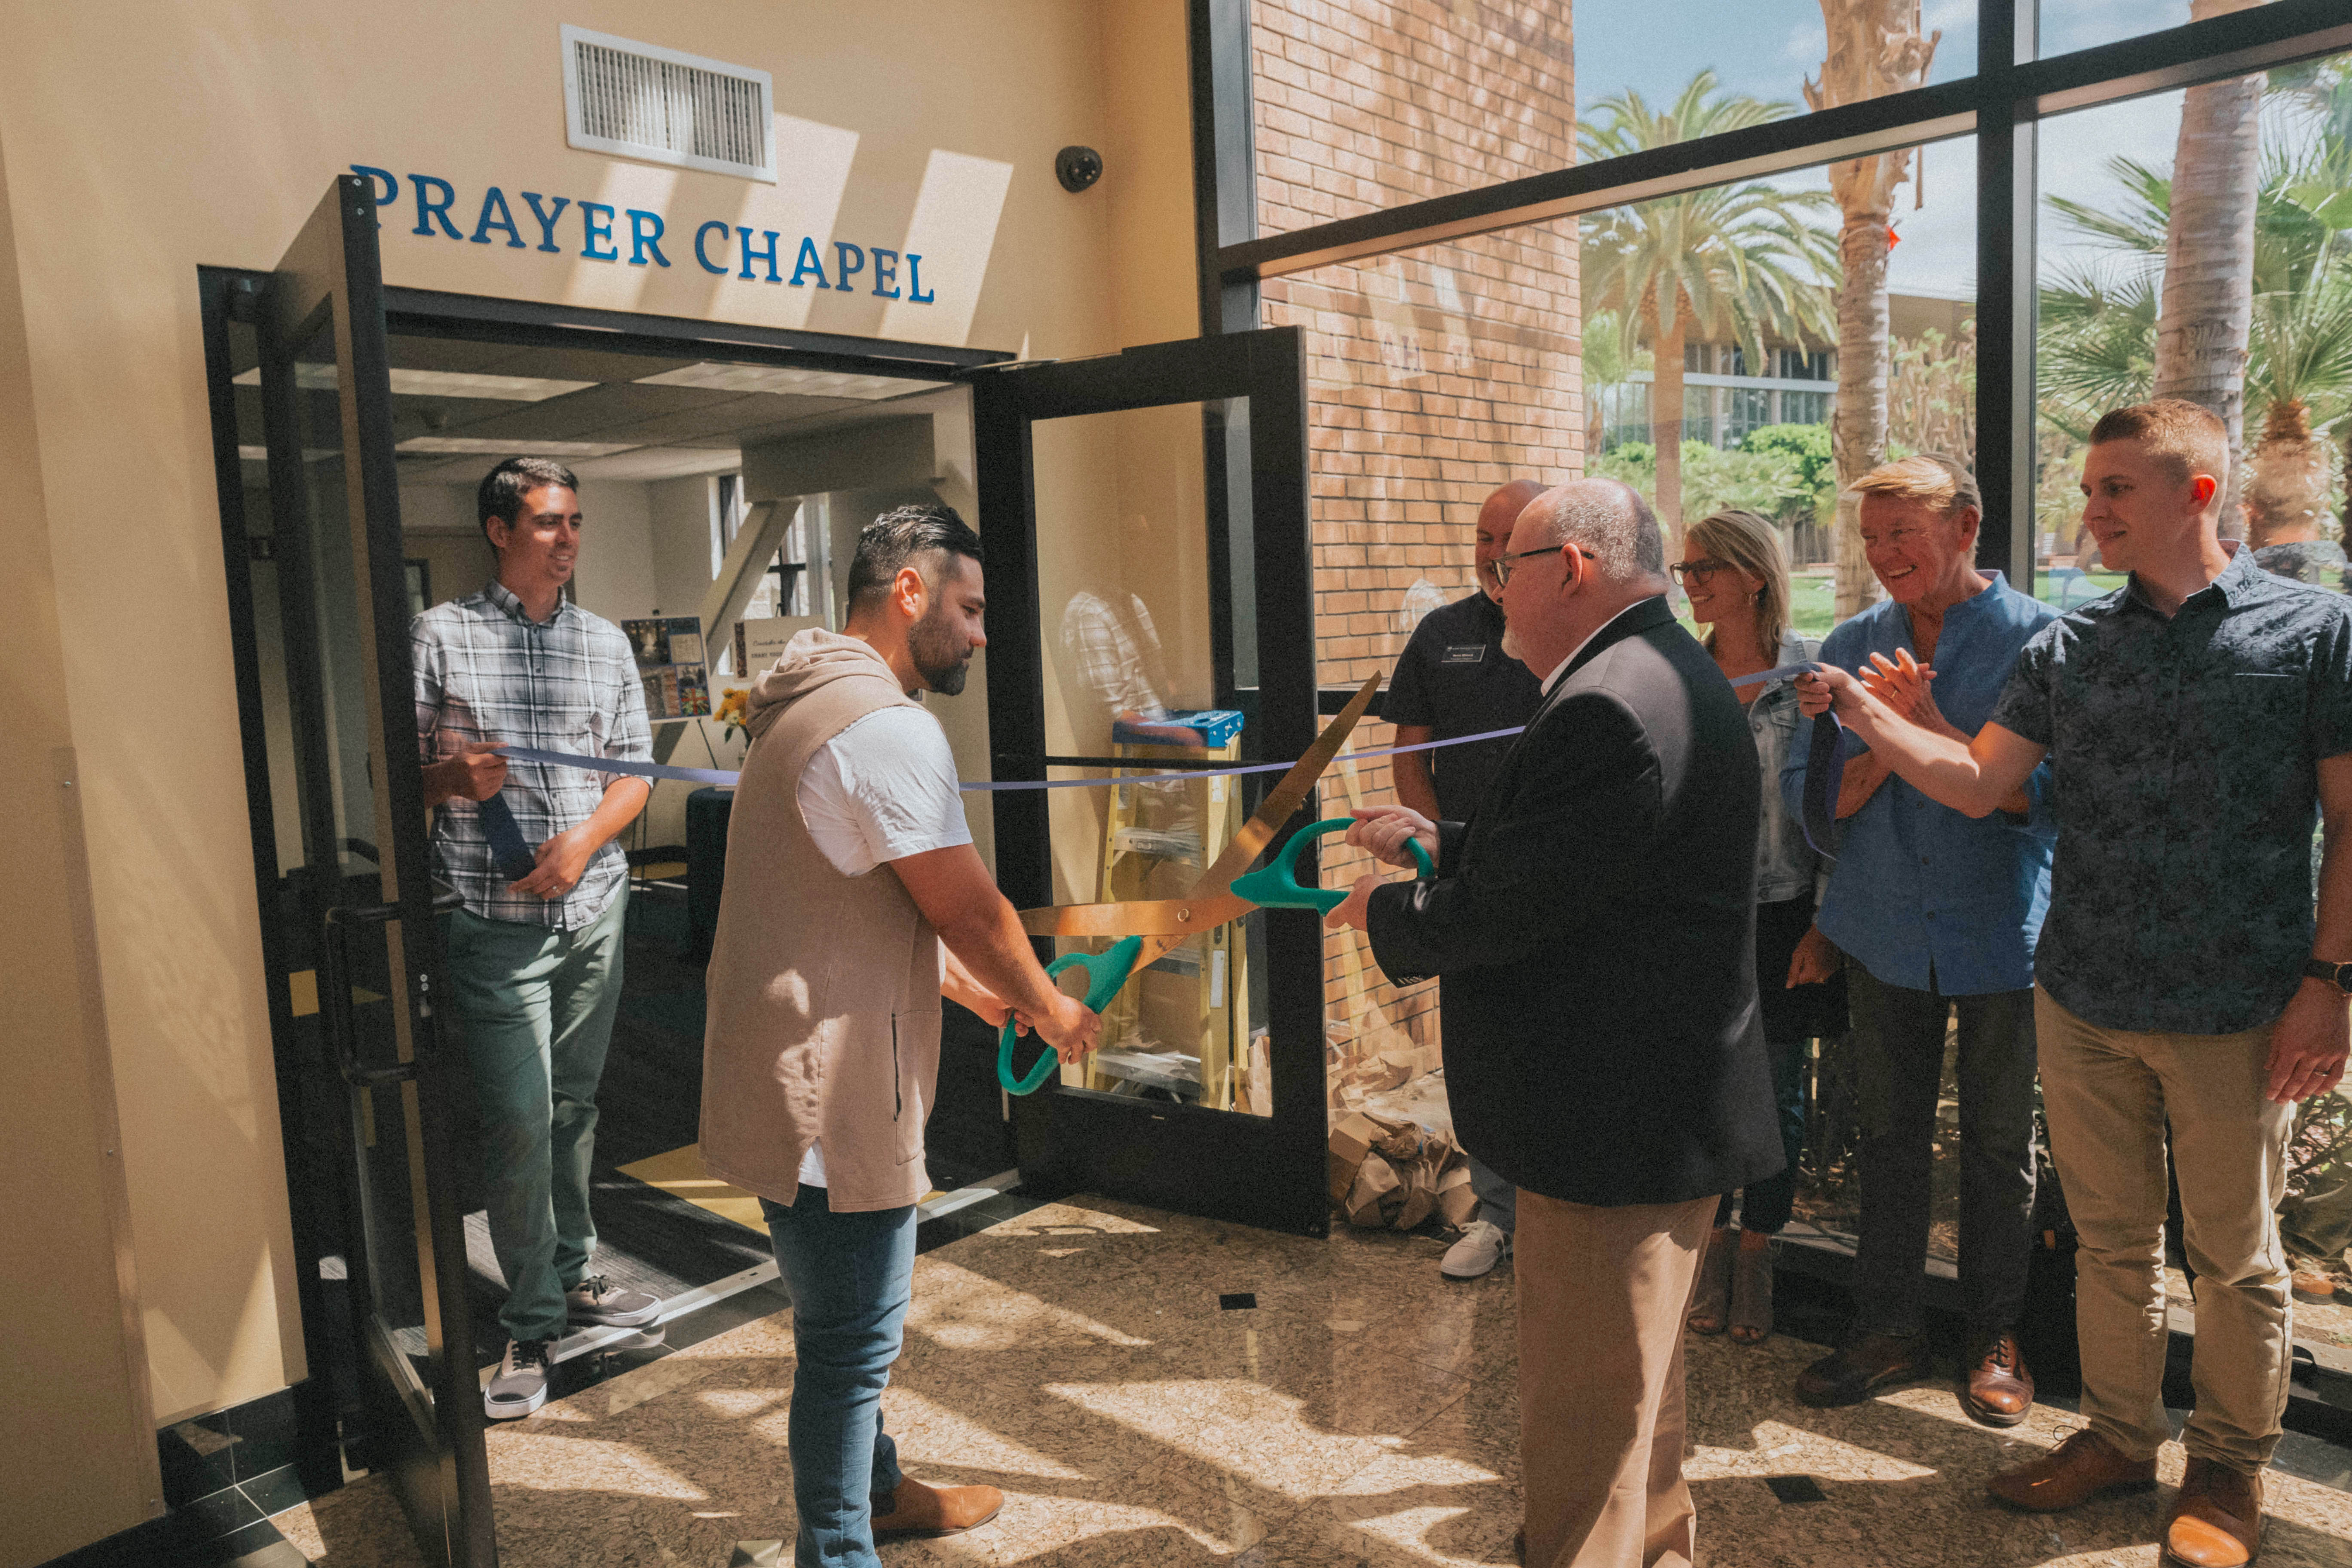 President Jim Adams and Campus Chaplain Phil Urdiales cutting the ribbon for the grand opening of Life Pacific's prayer chapel.